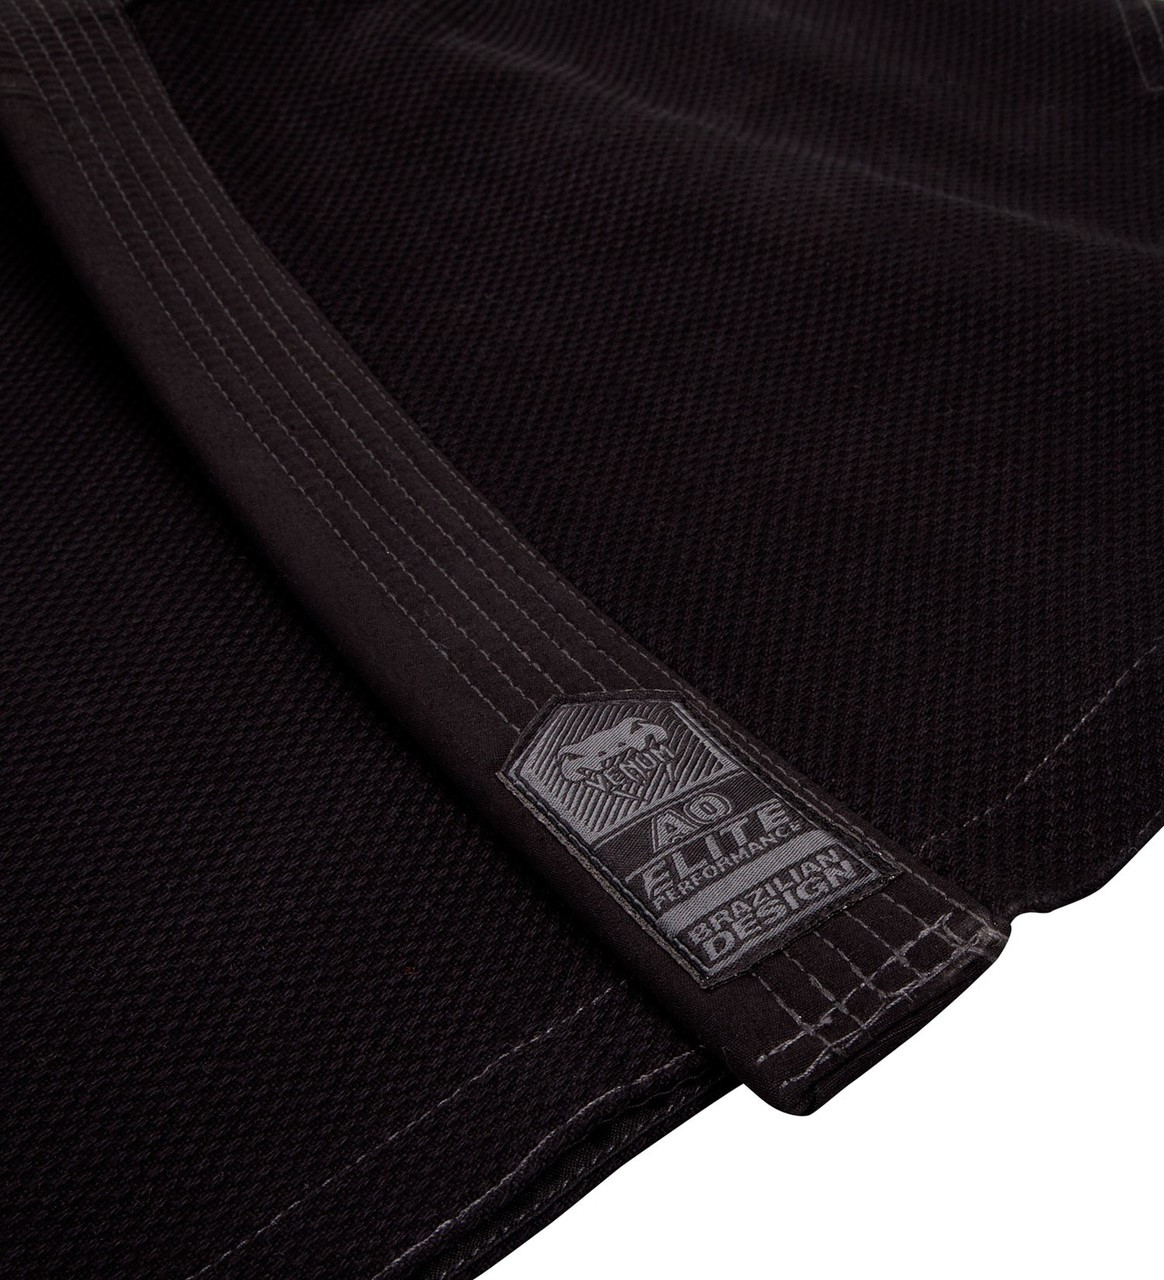 Lapel tip of the Venum Elite BJJ GI in Black on black  is now available at www.thejiujitsushop.com  Enjoy Free Shipping from The Jiu Jitsu Shop today!